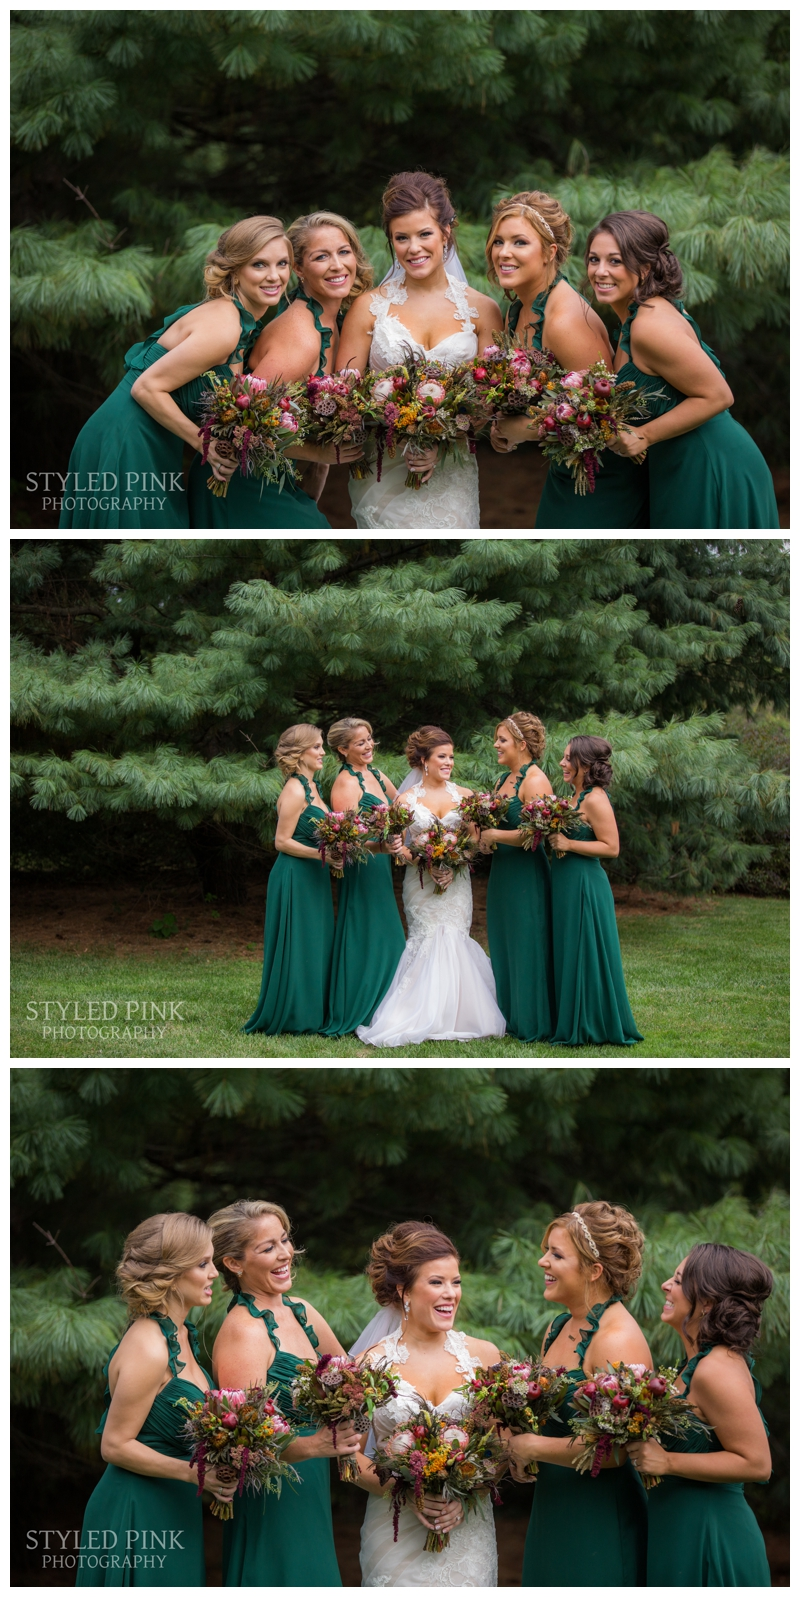 styled-pink-photography-knowlton-mansion-wedding-34